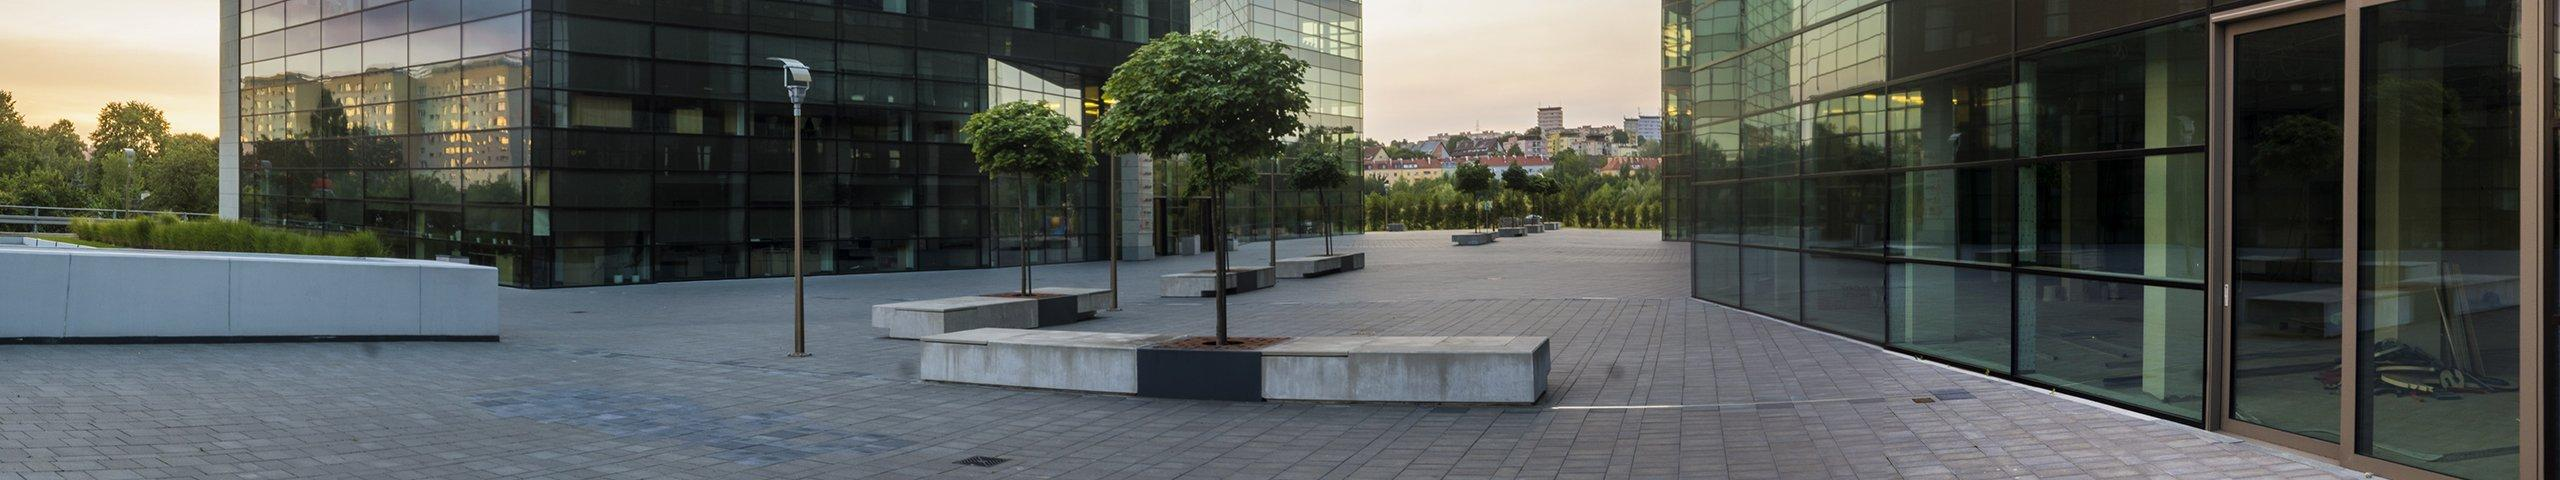 the courtyard of two large commercial buildings